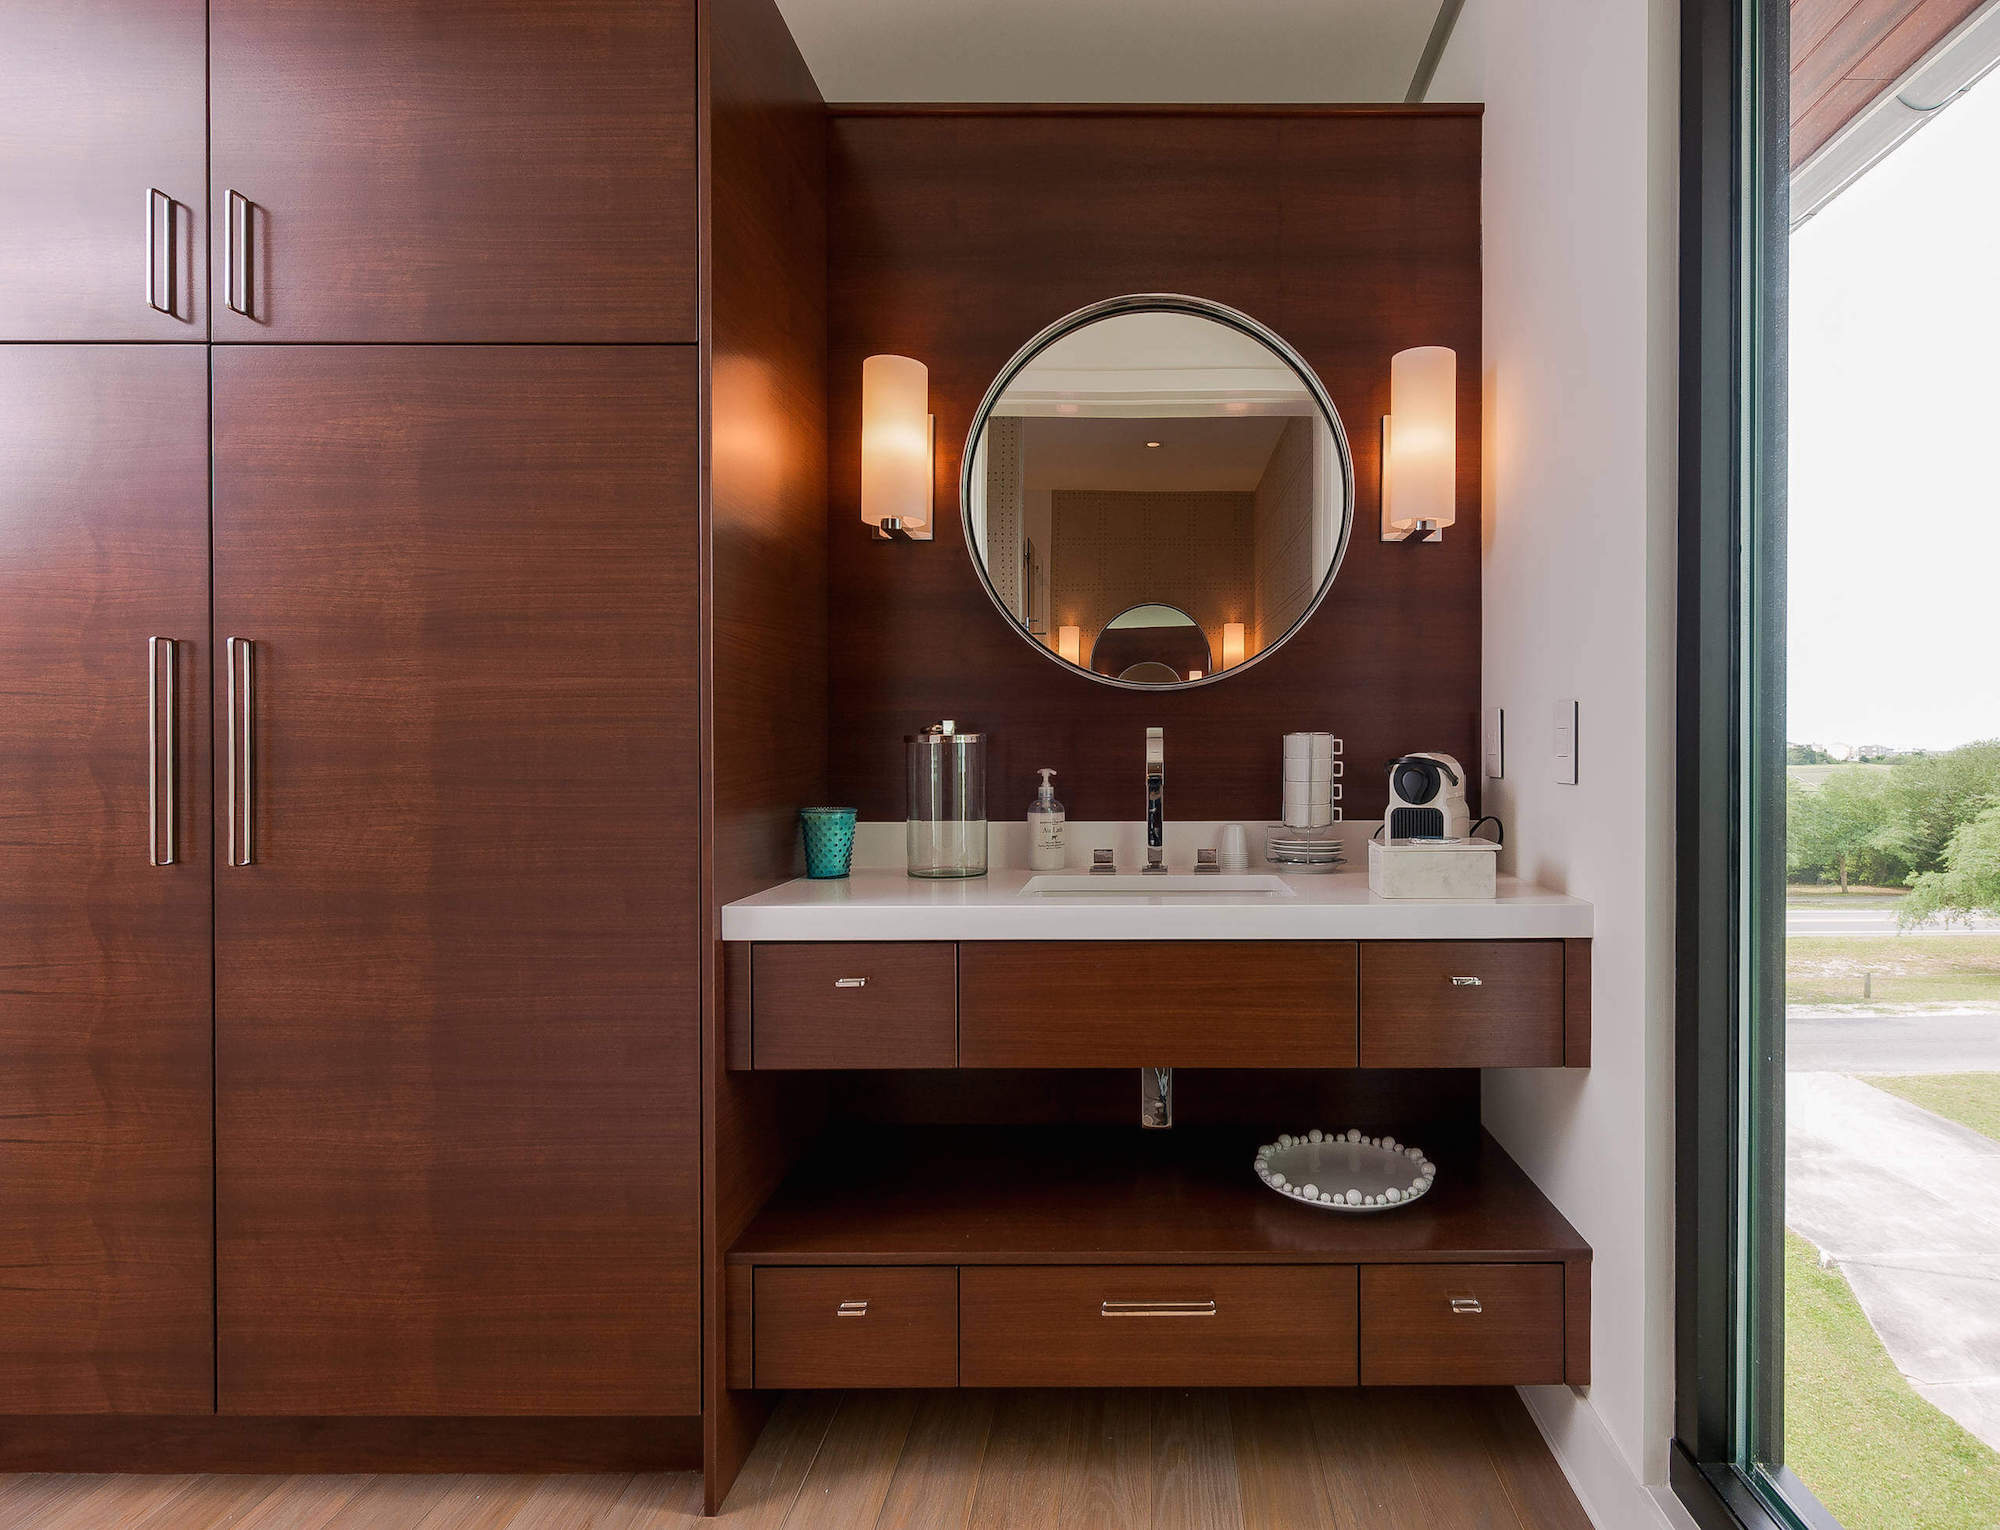 Waterline-Residence-michael-ross-kersting-architecture-23